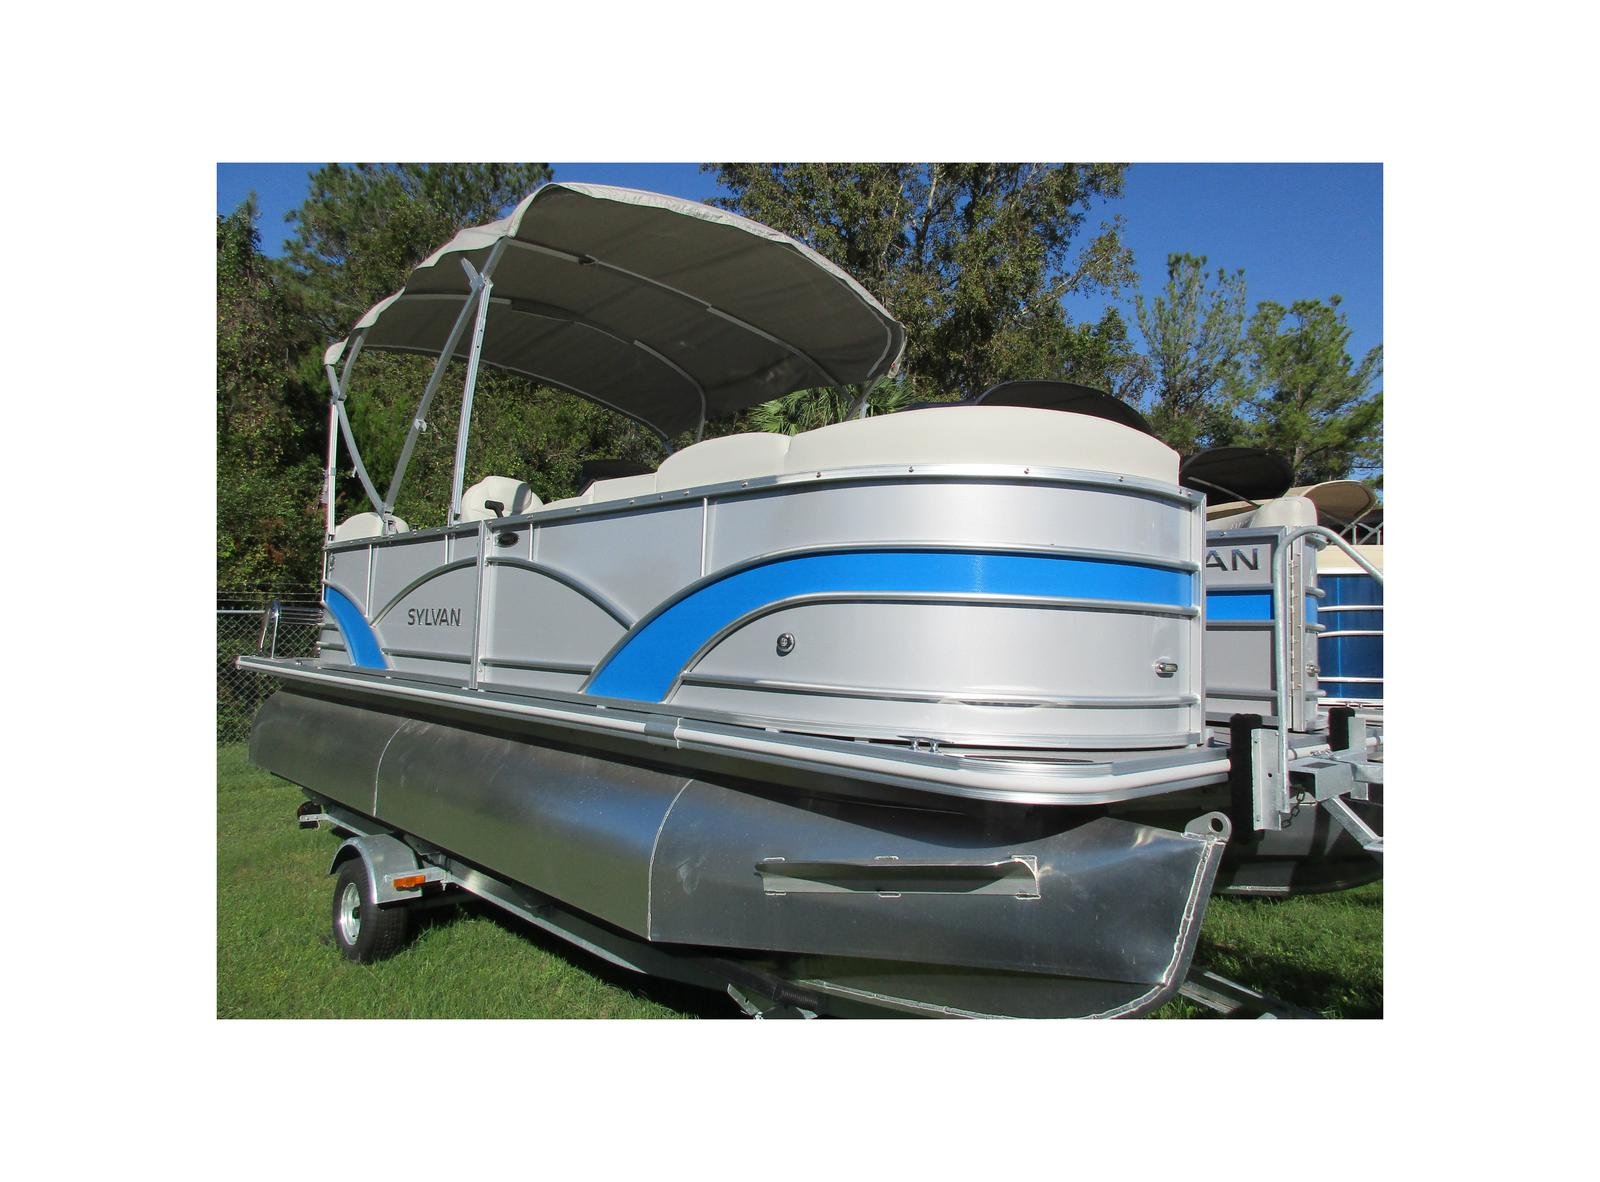 Zf | New and Used Boats for Sale in Florida